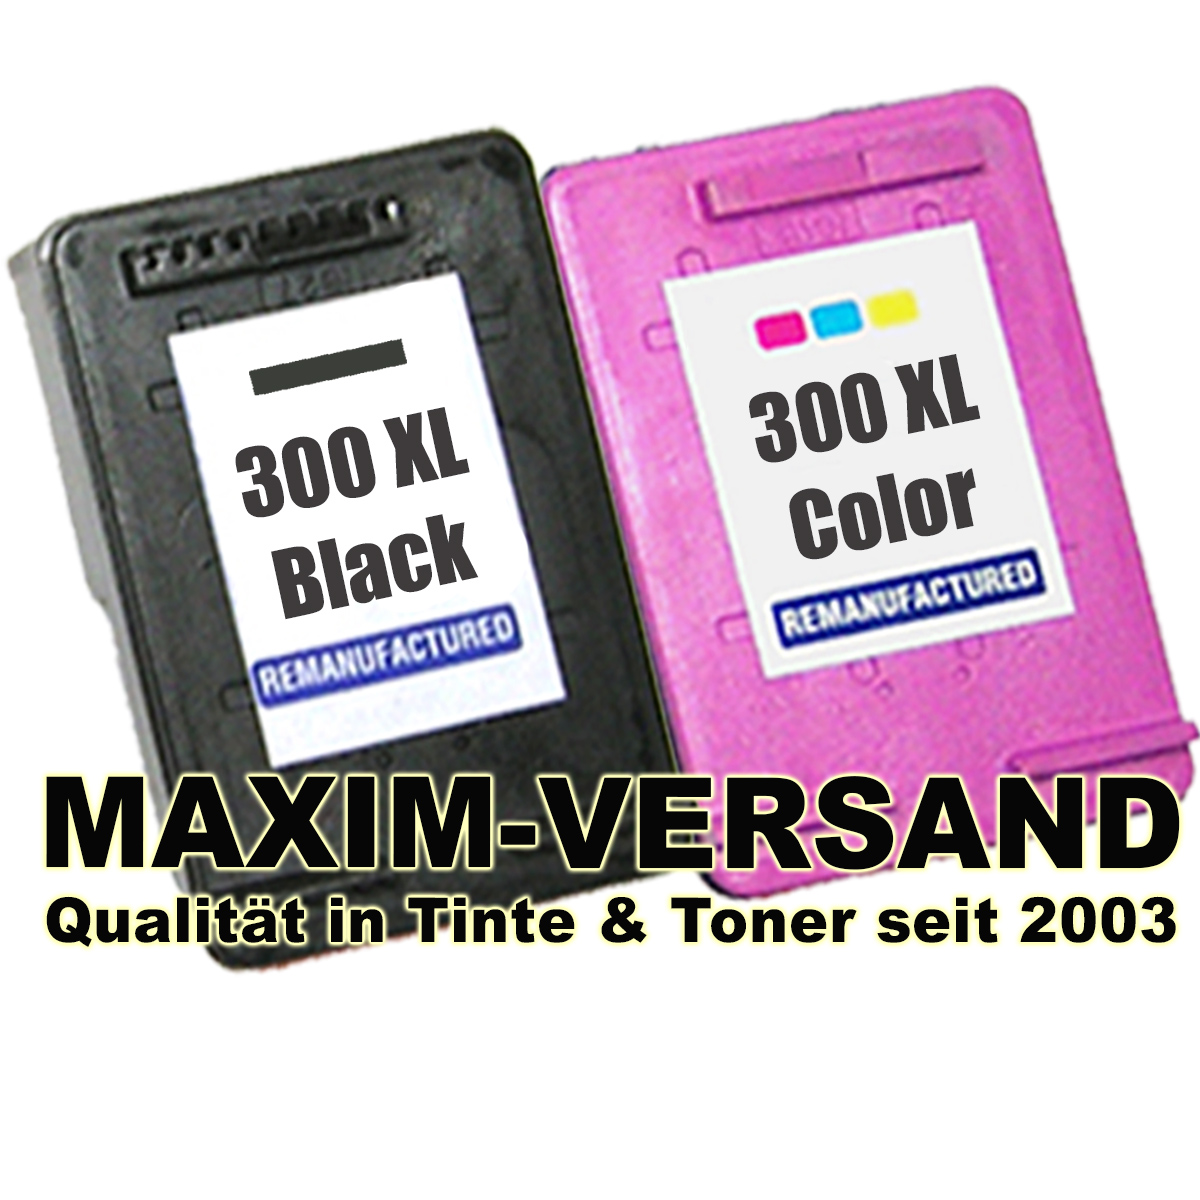 Patronen für HP 300 XL Black + HP 300 XL Color kompatibel (2er Set)